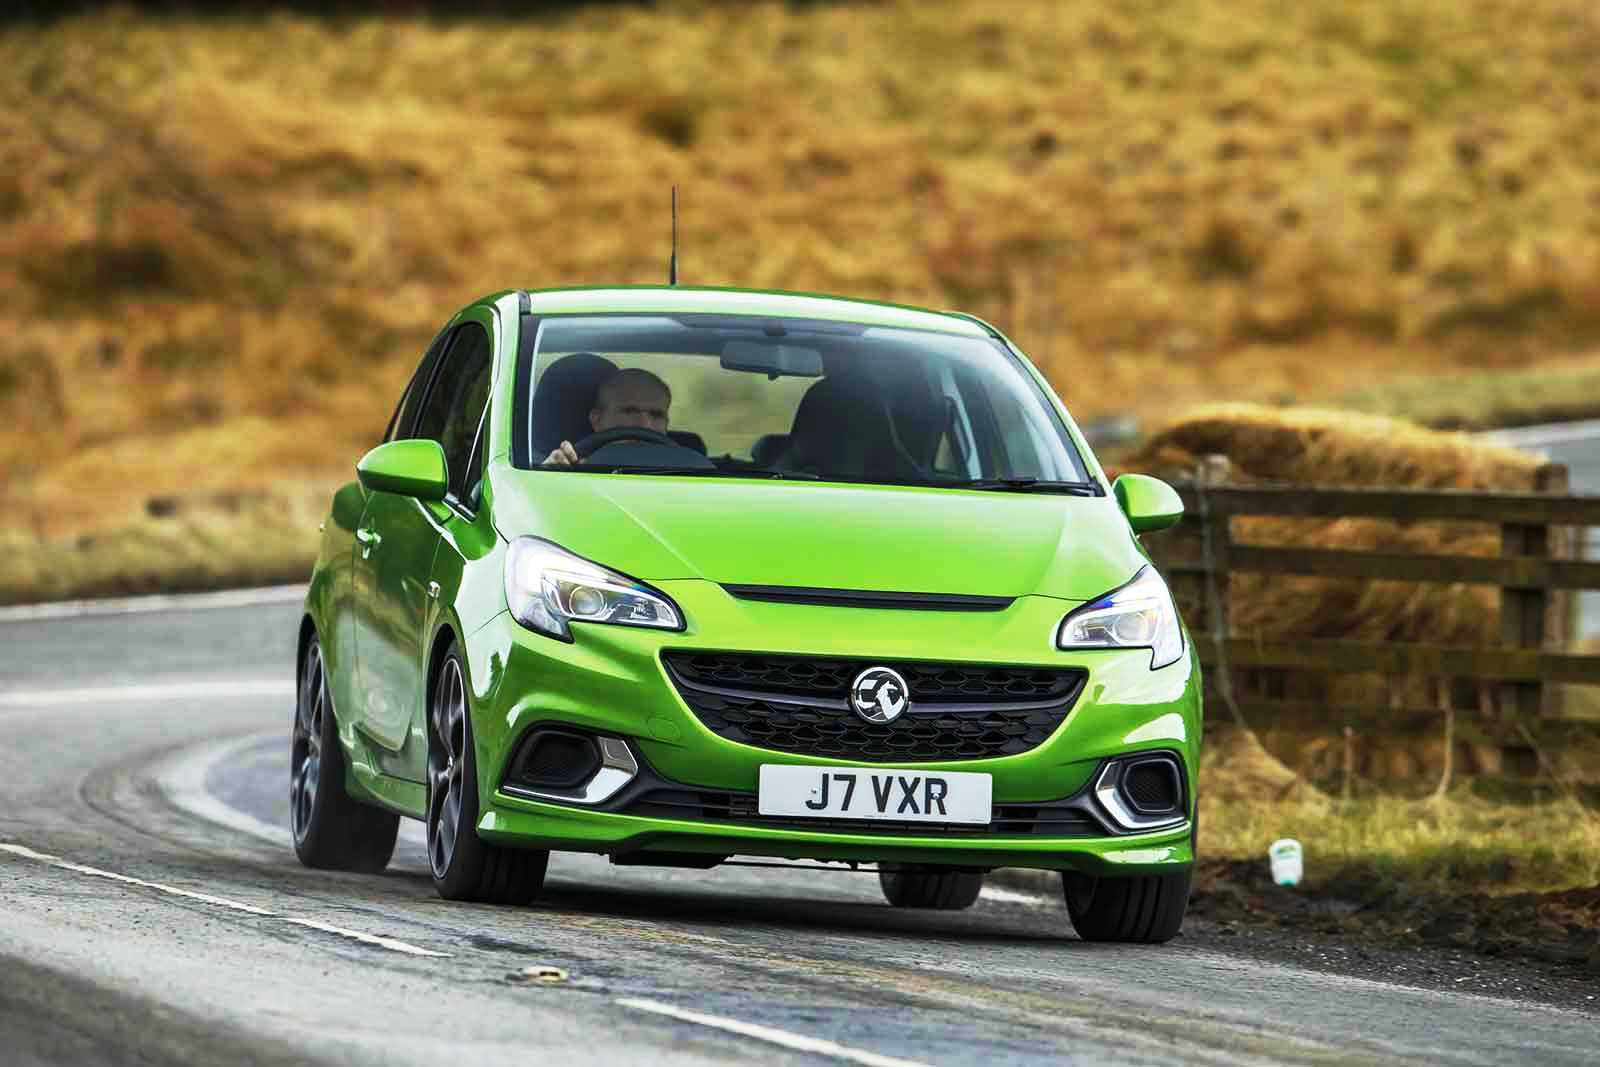 The New Vauxhall Corsa VXR On The Road